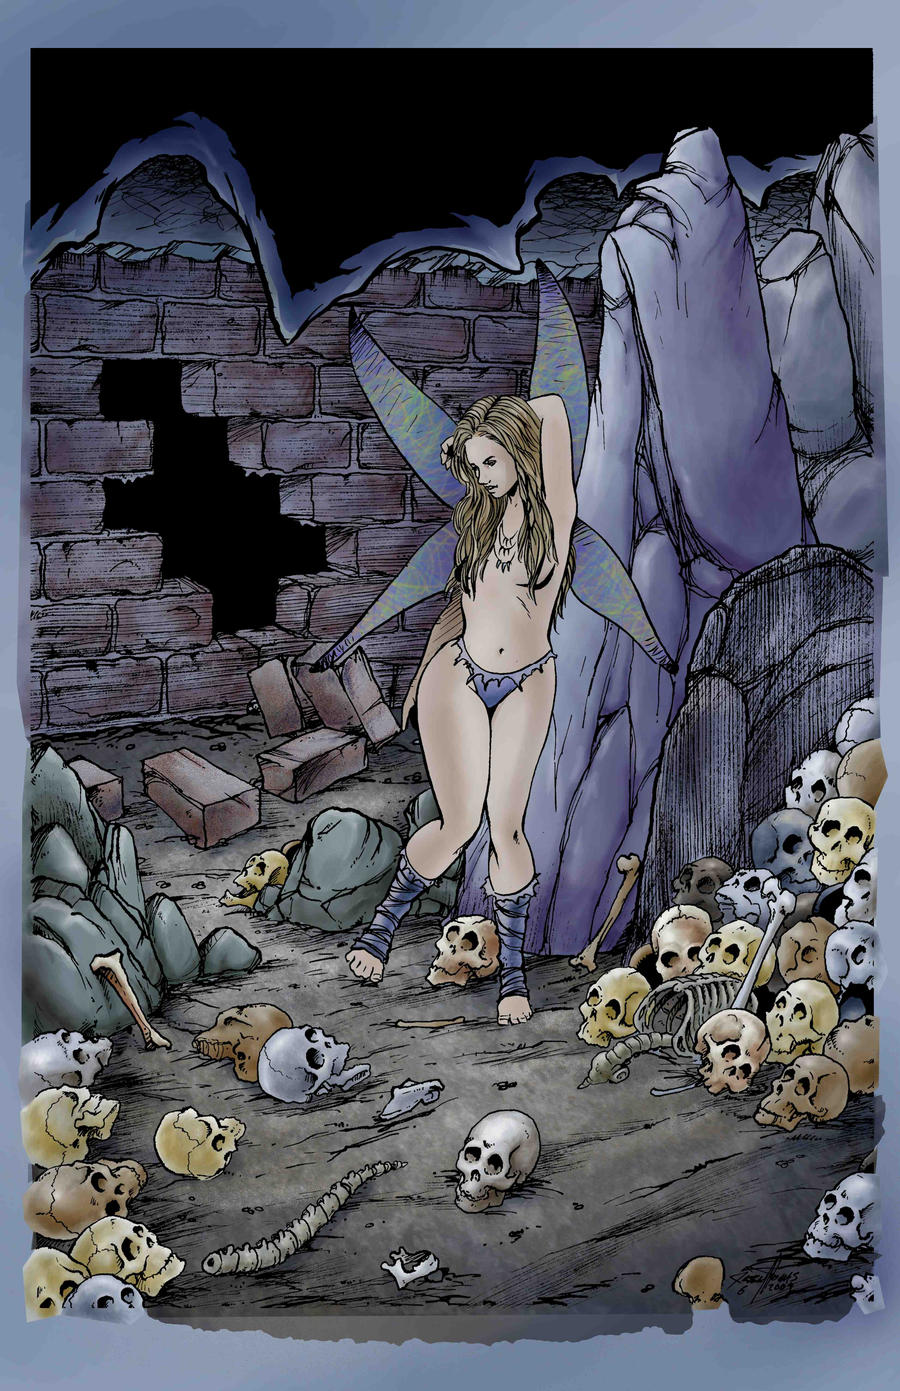 Fairy in the Skull Dungeon by JesseThomas7800